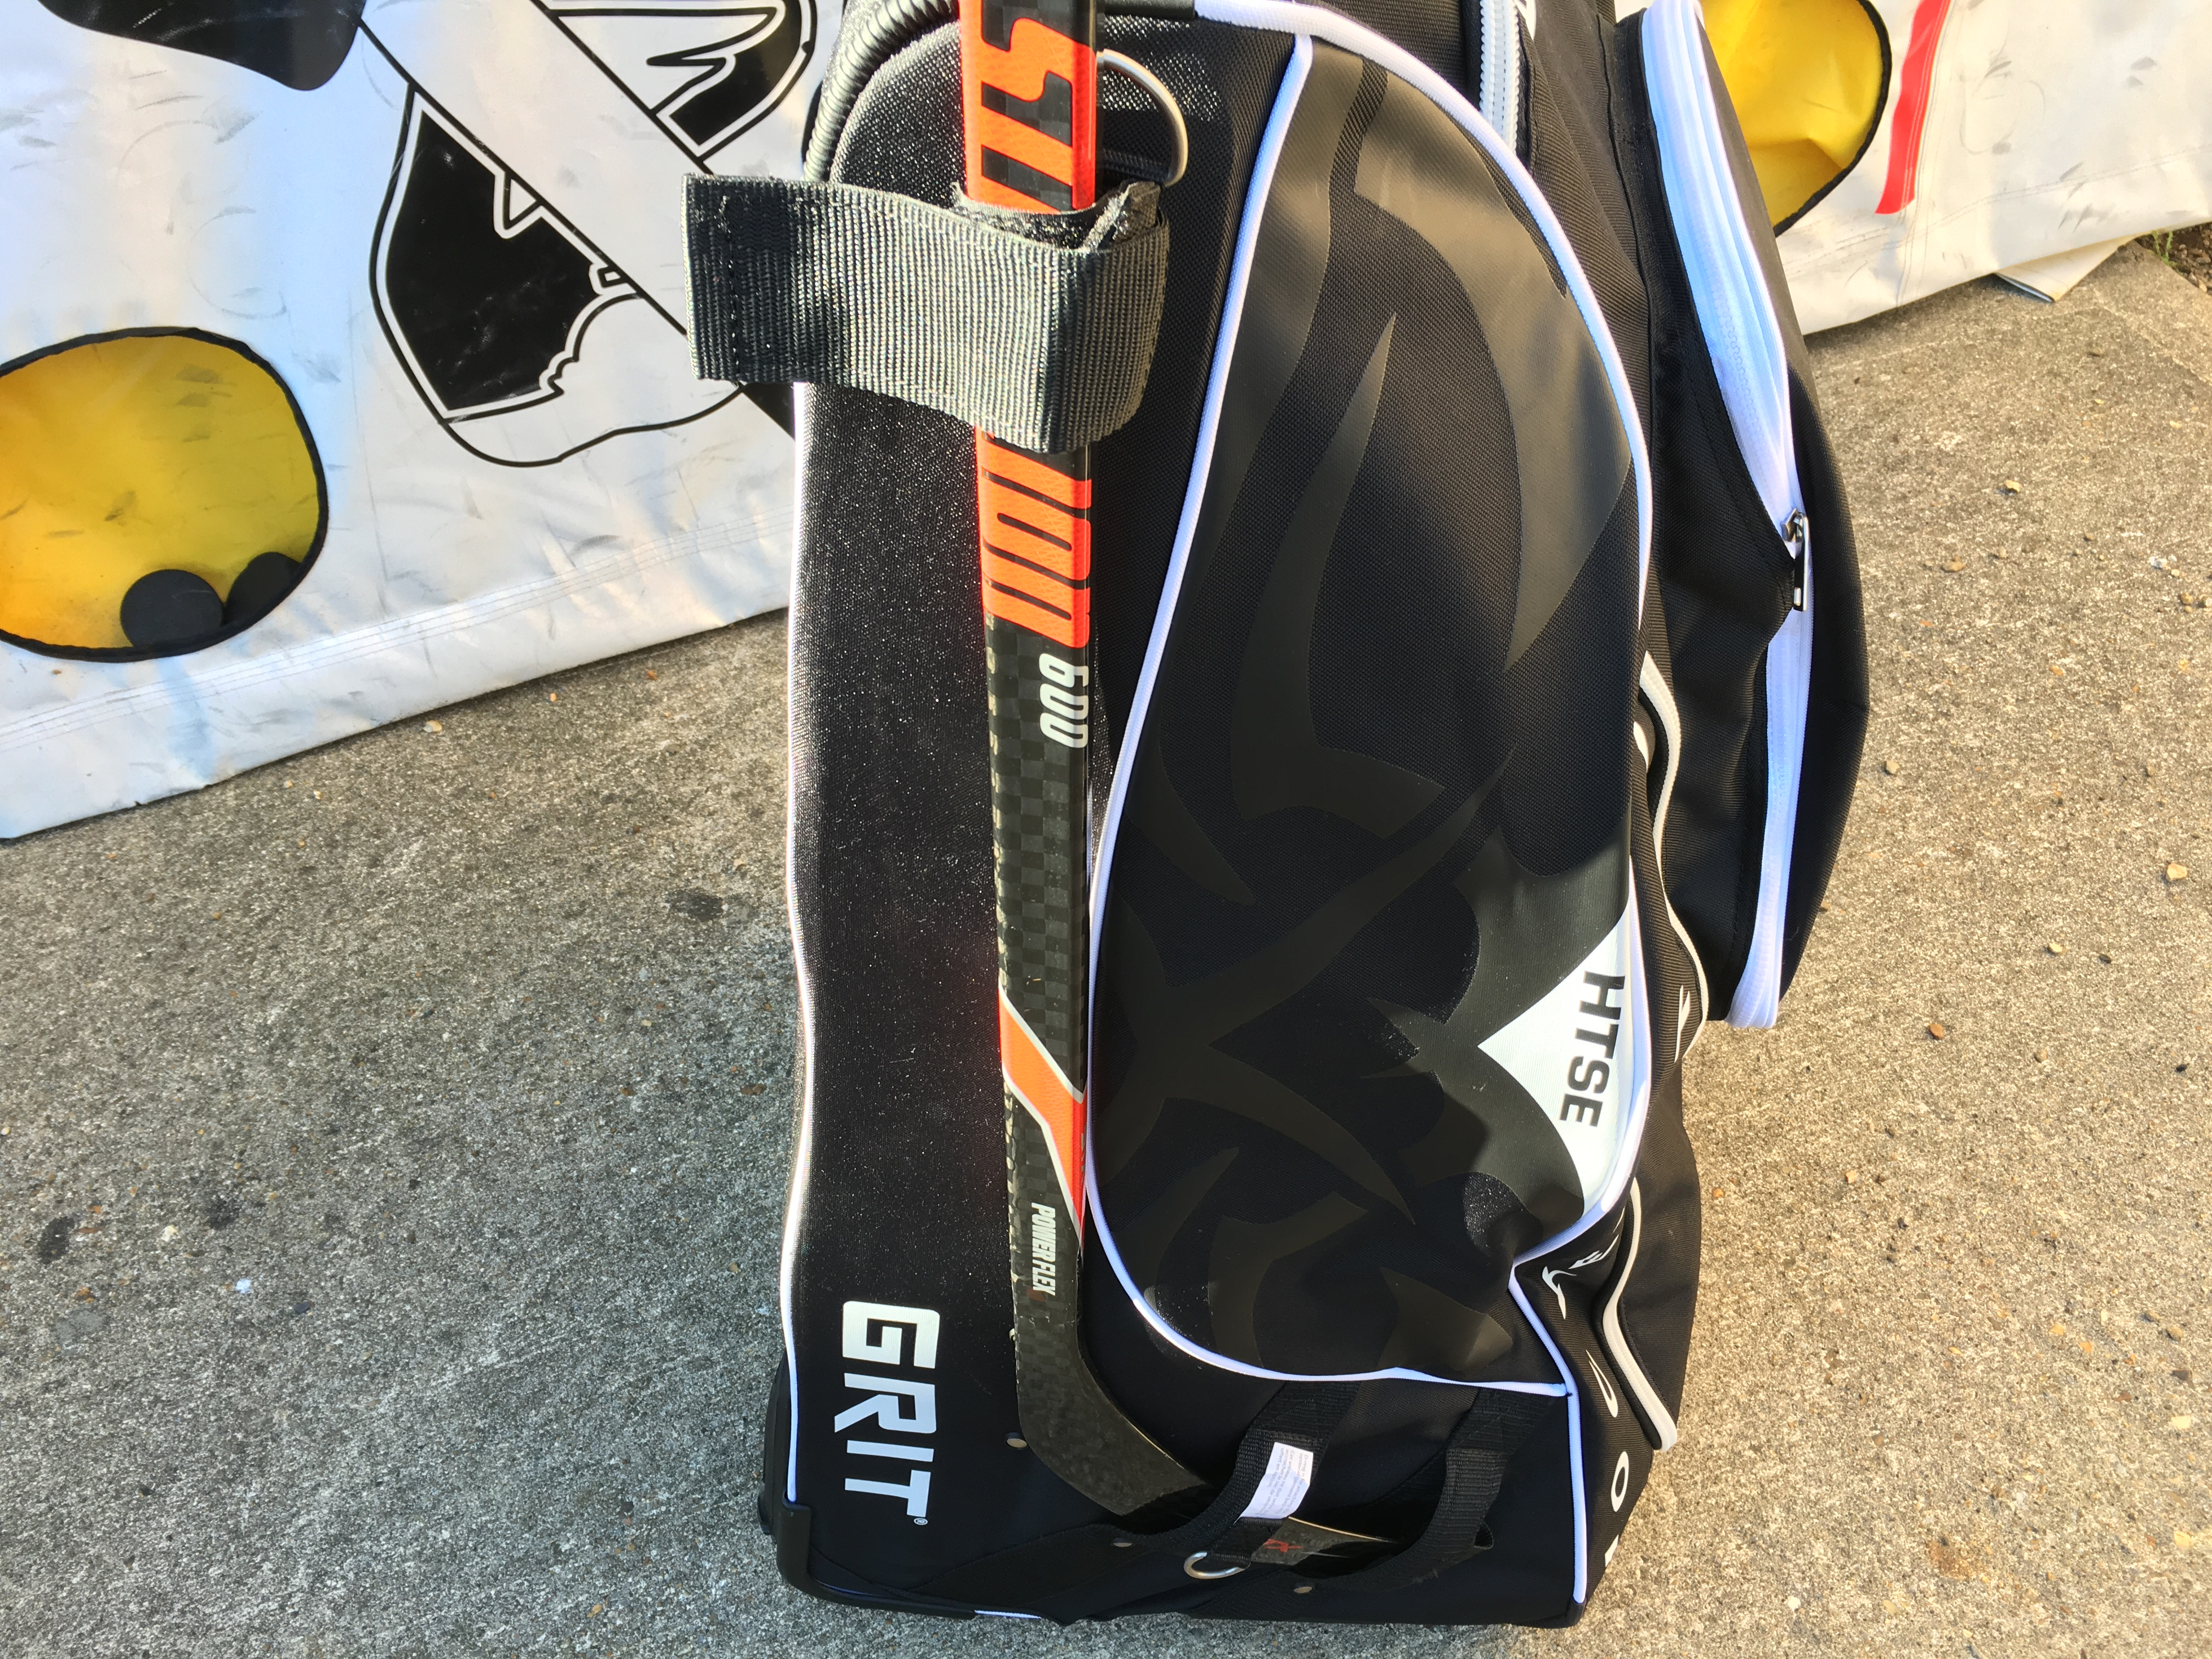 Grit HTSE Tower Hockey bag review9152